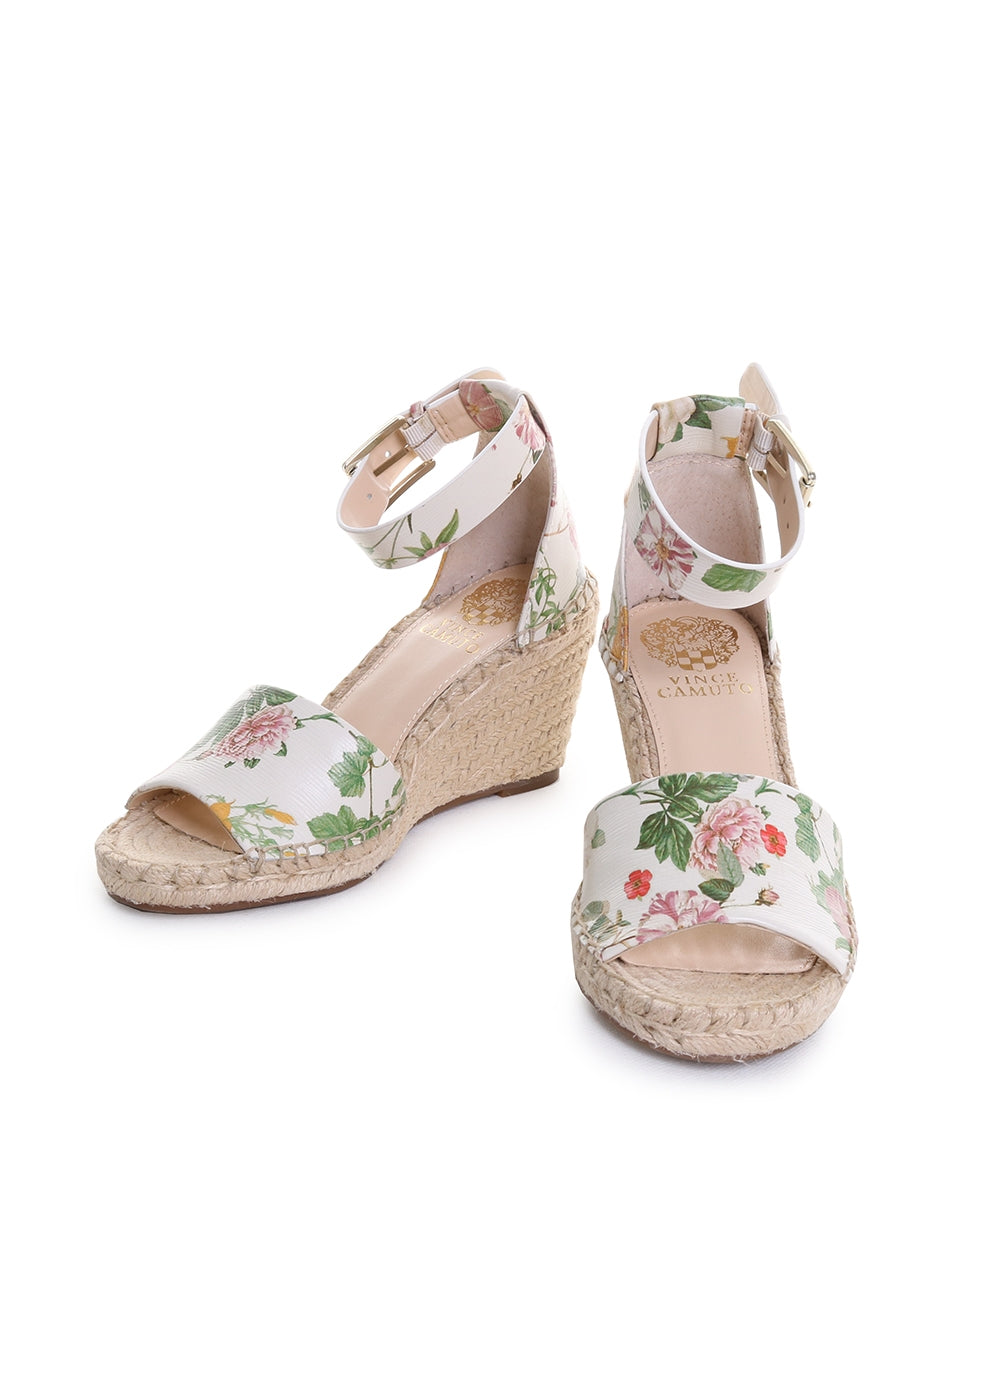 Leera Floral Leather Ankle Strap Espadrille Wedge Sandals